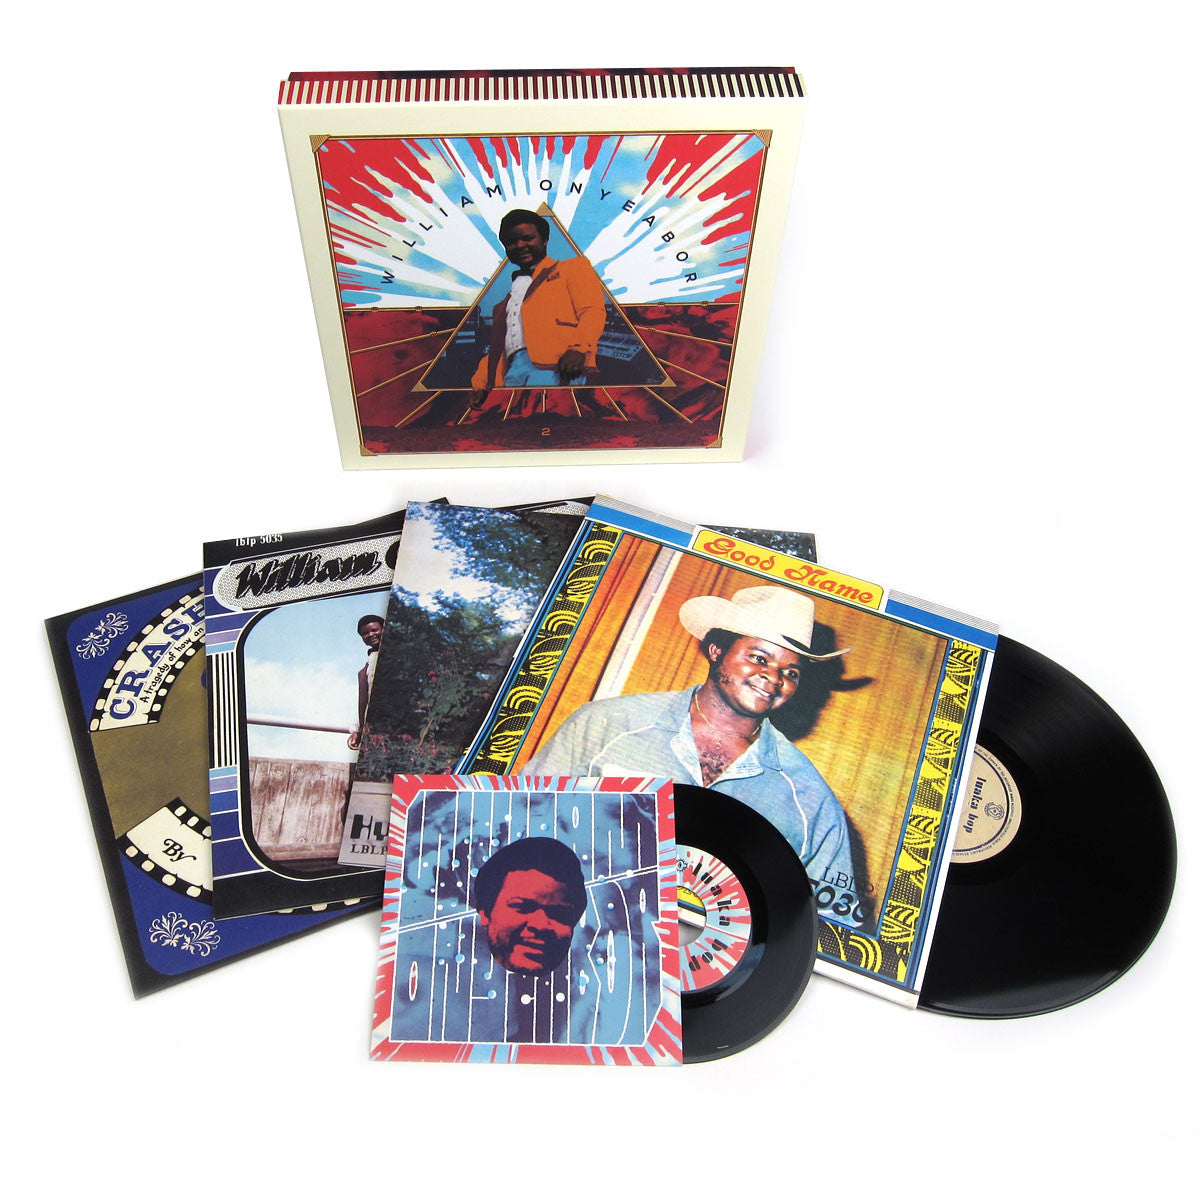 William Onyeabor: Volume 2 Vinyl LP Boxset